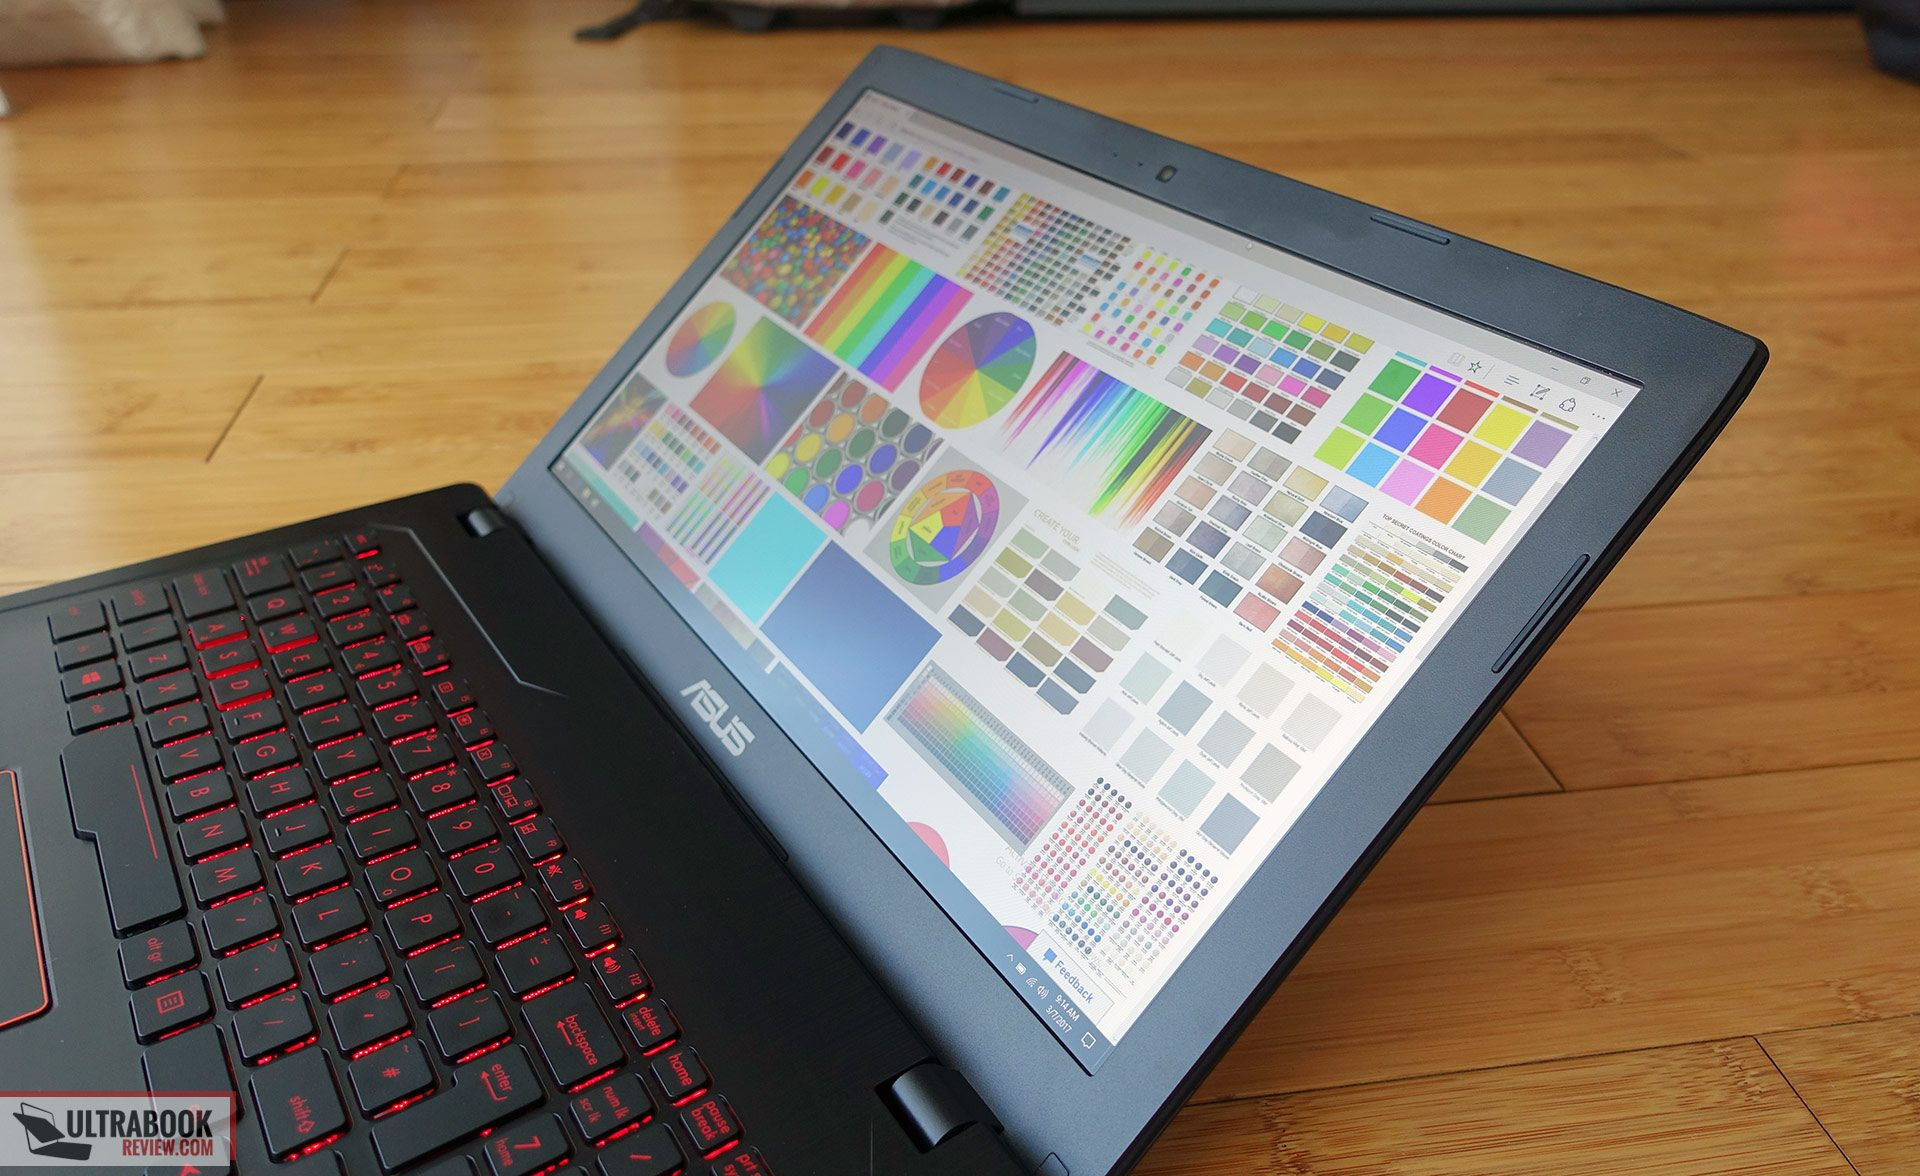 Asus ROG Strix GL553VE review - multimedia laptop with Core